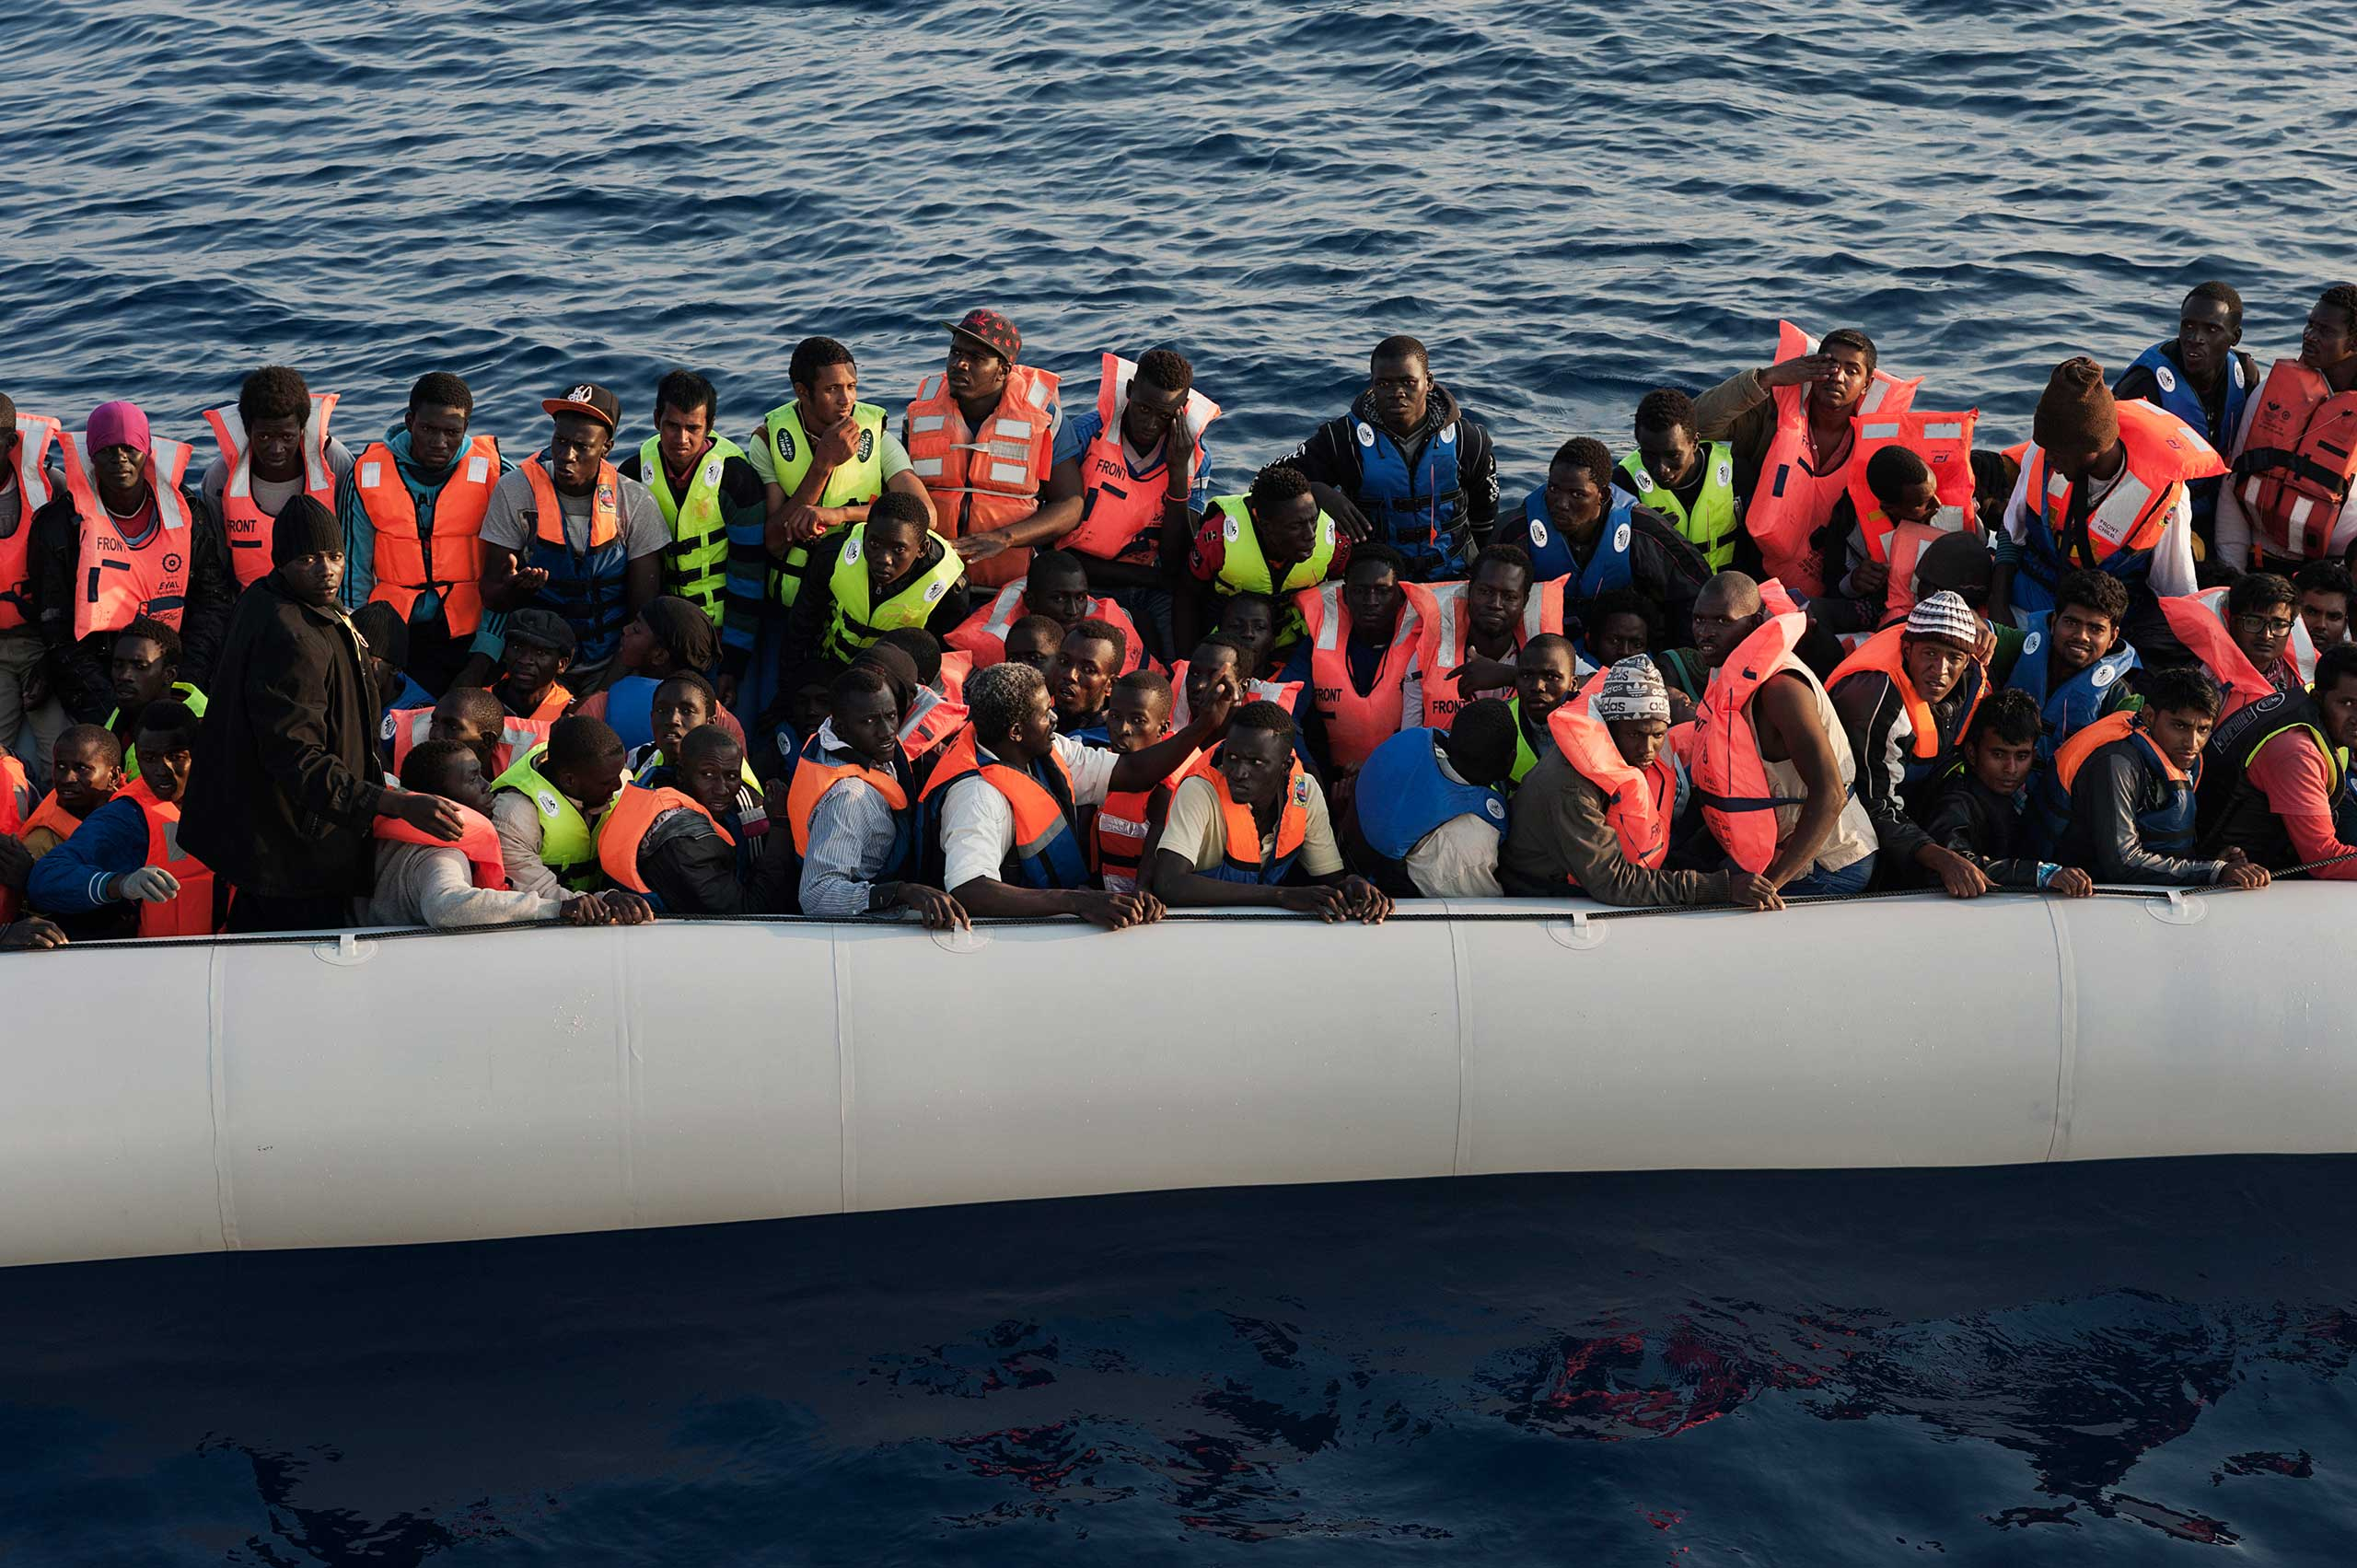 A boat of migrants that set off from Libya, as seen from a ship belonging to Italian authorities, during a rescue operation on June 6, 2015.